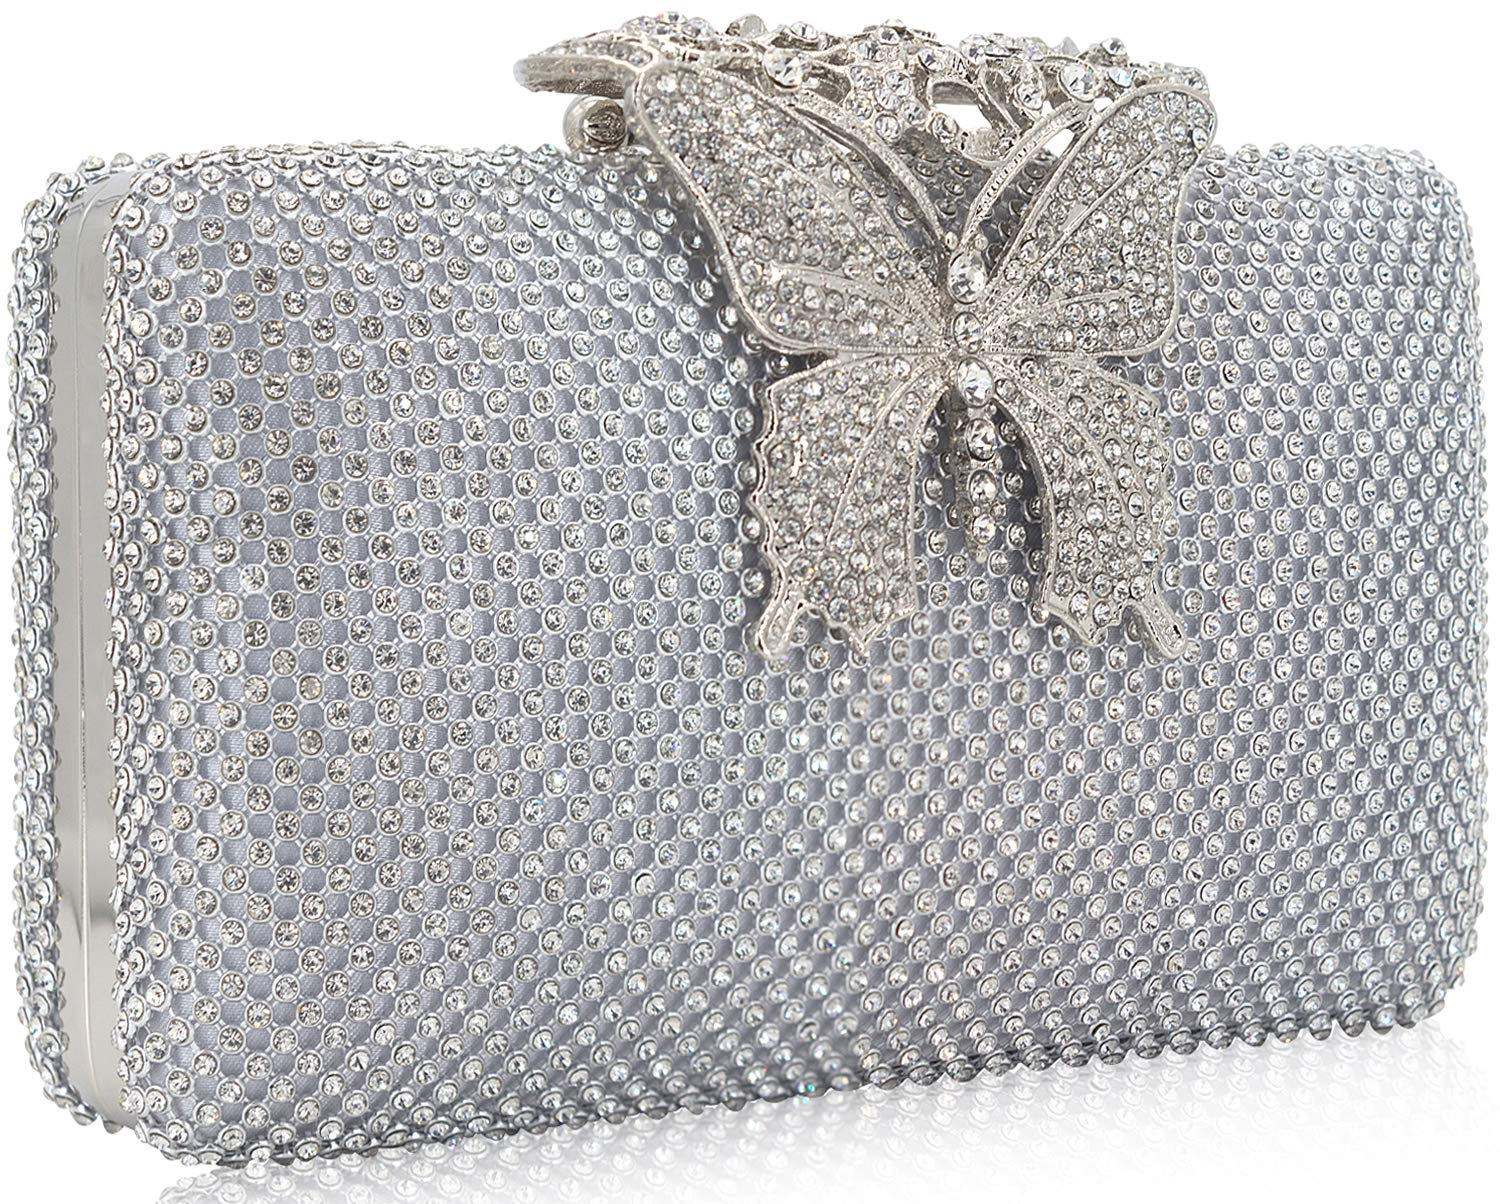 Dexmay Rhinestone Crystal Clutch Purse Butterfly Clasp Women Evening Bag for Formal Party Silver by DEXMAY DM (Image #2)